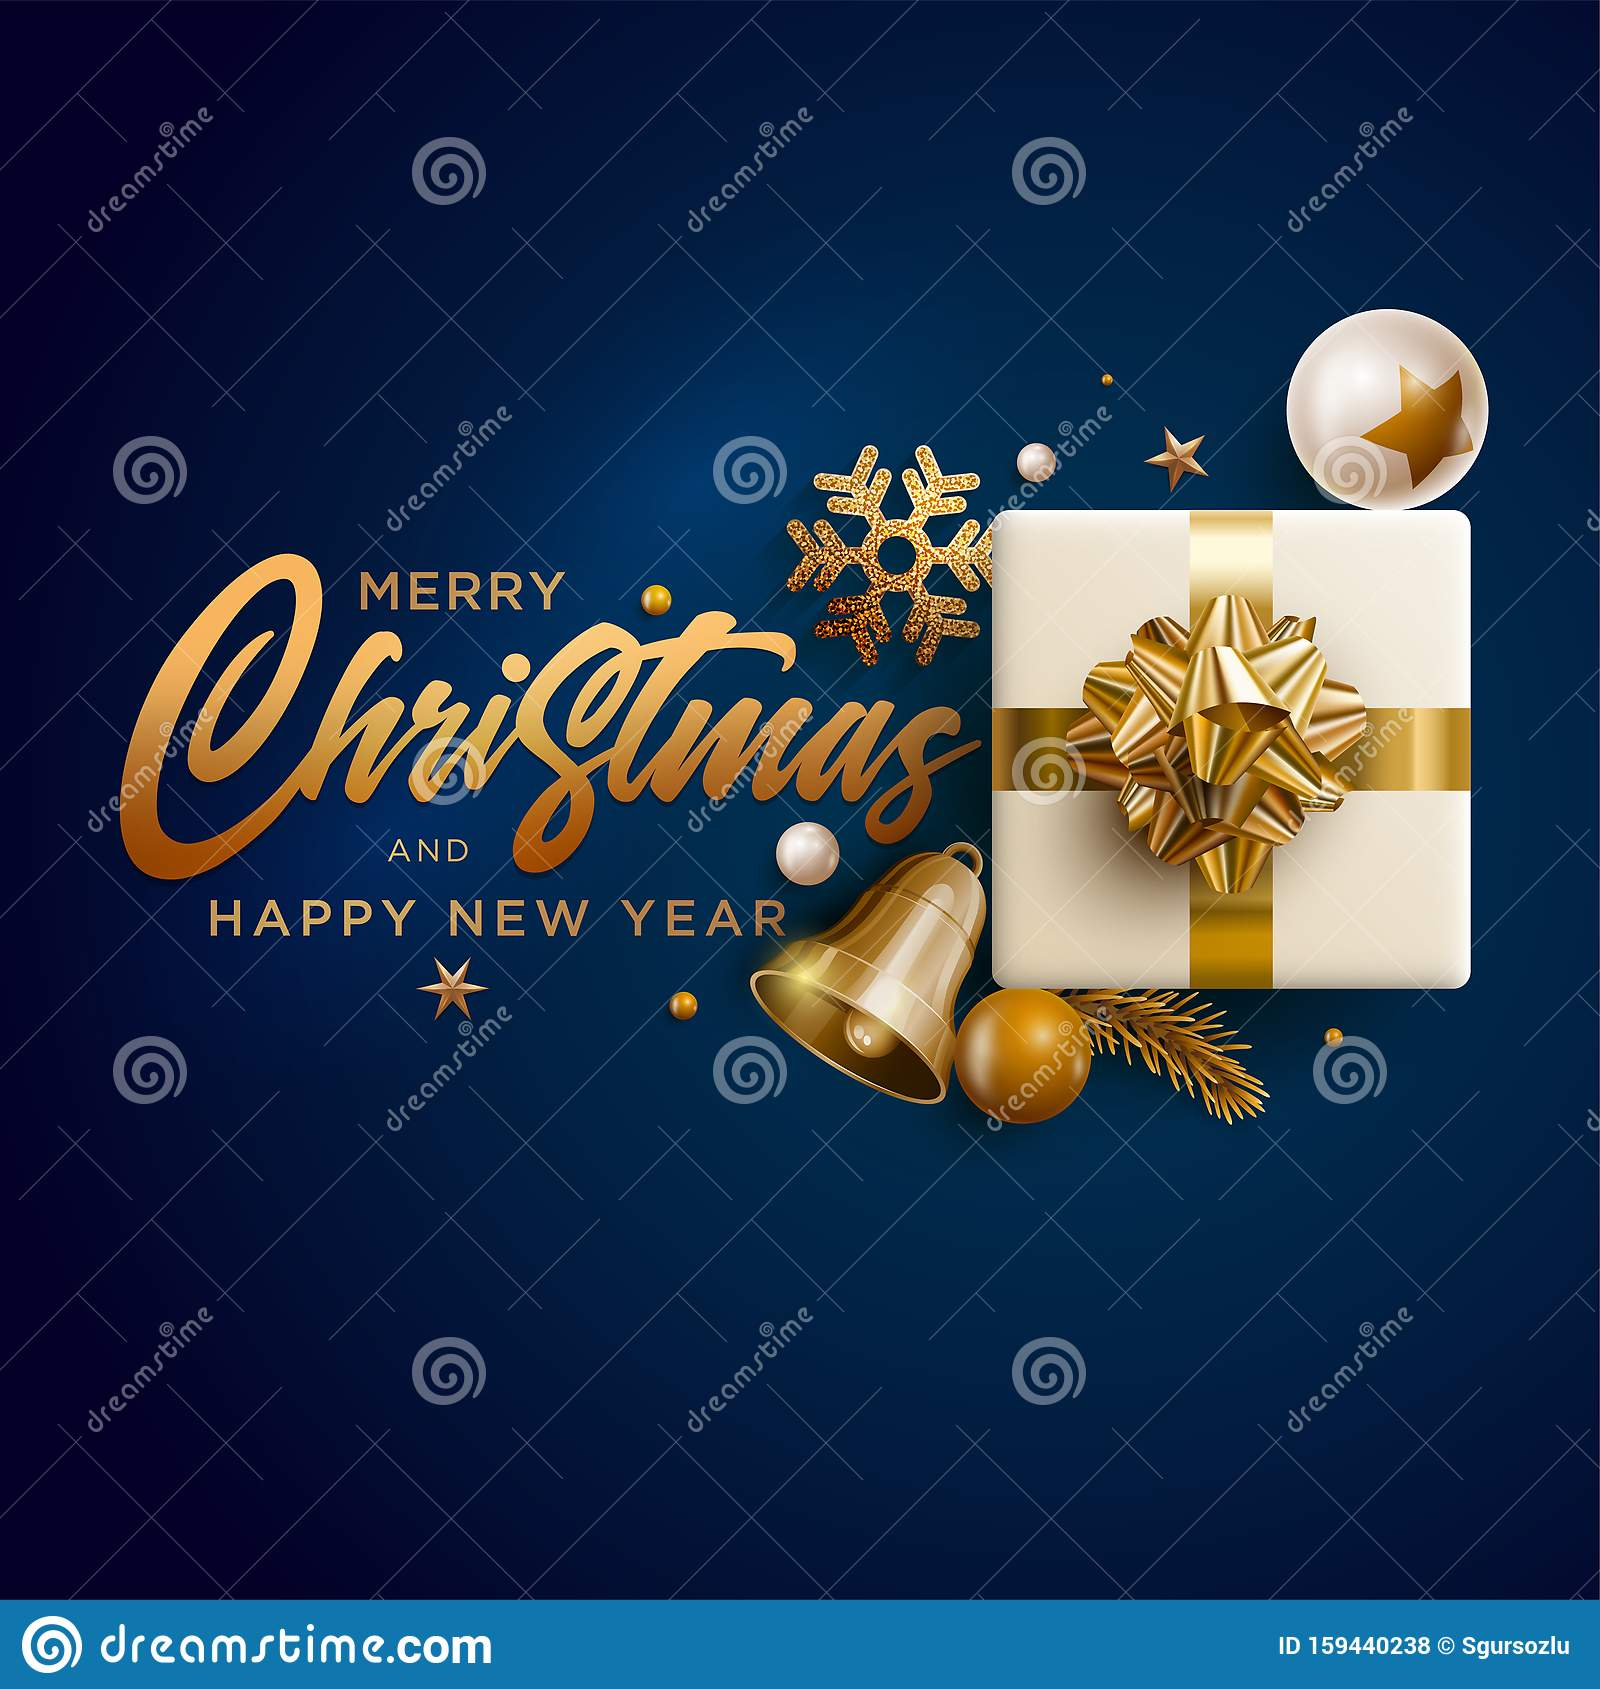 Merry Christmas And New Year Greeting Card Design Stock ...